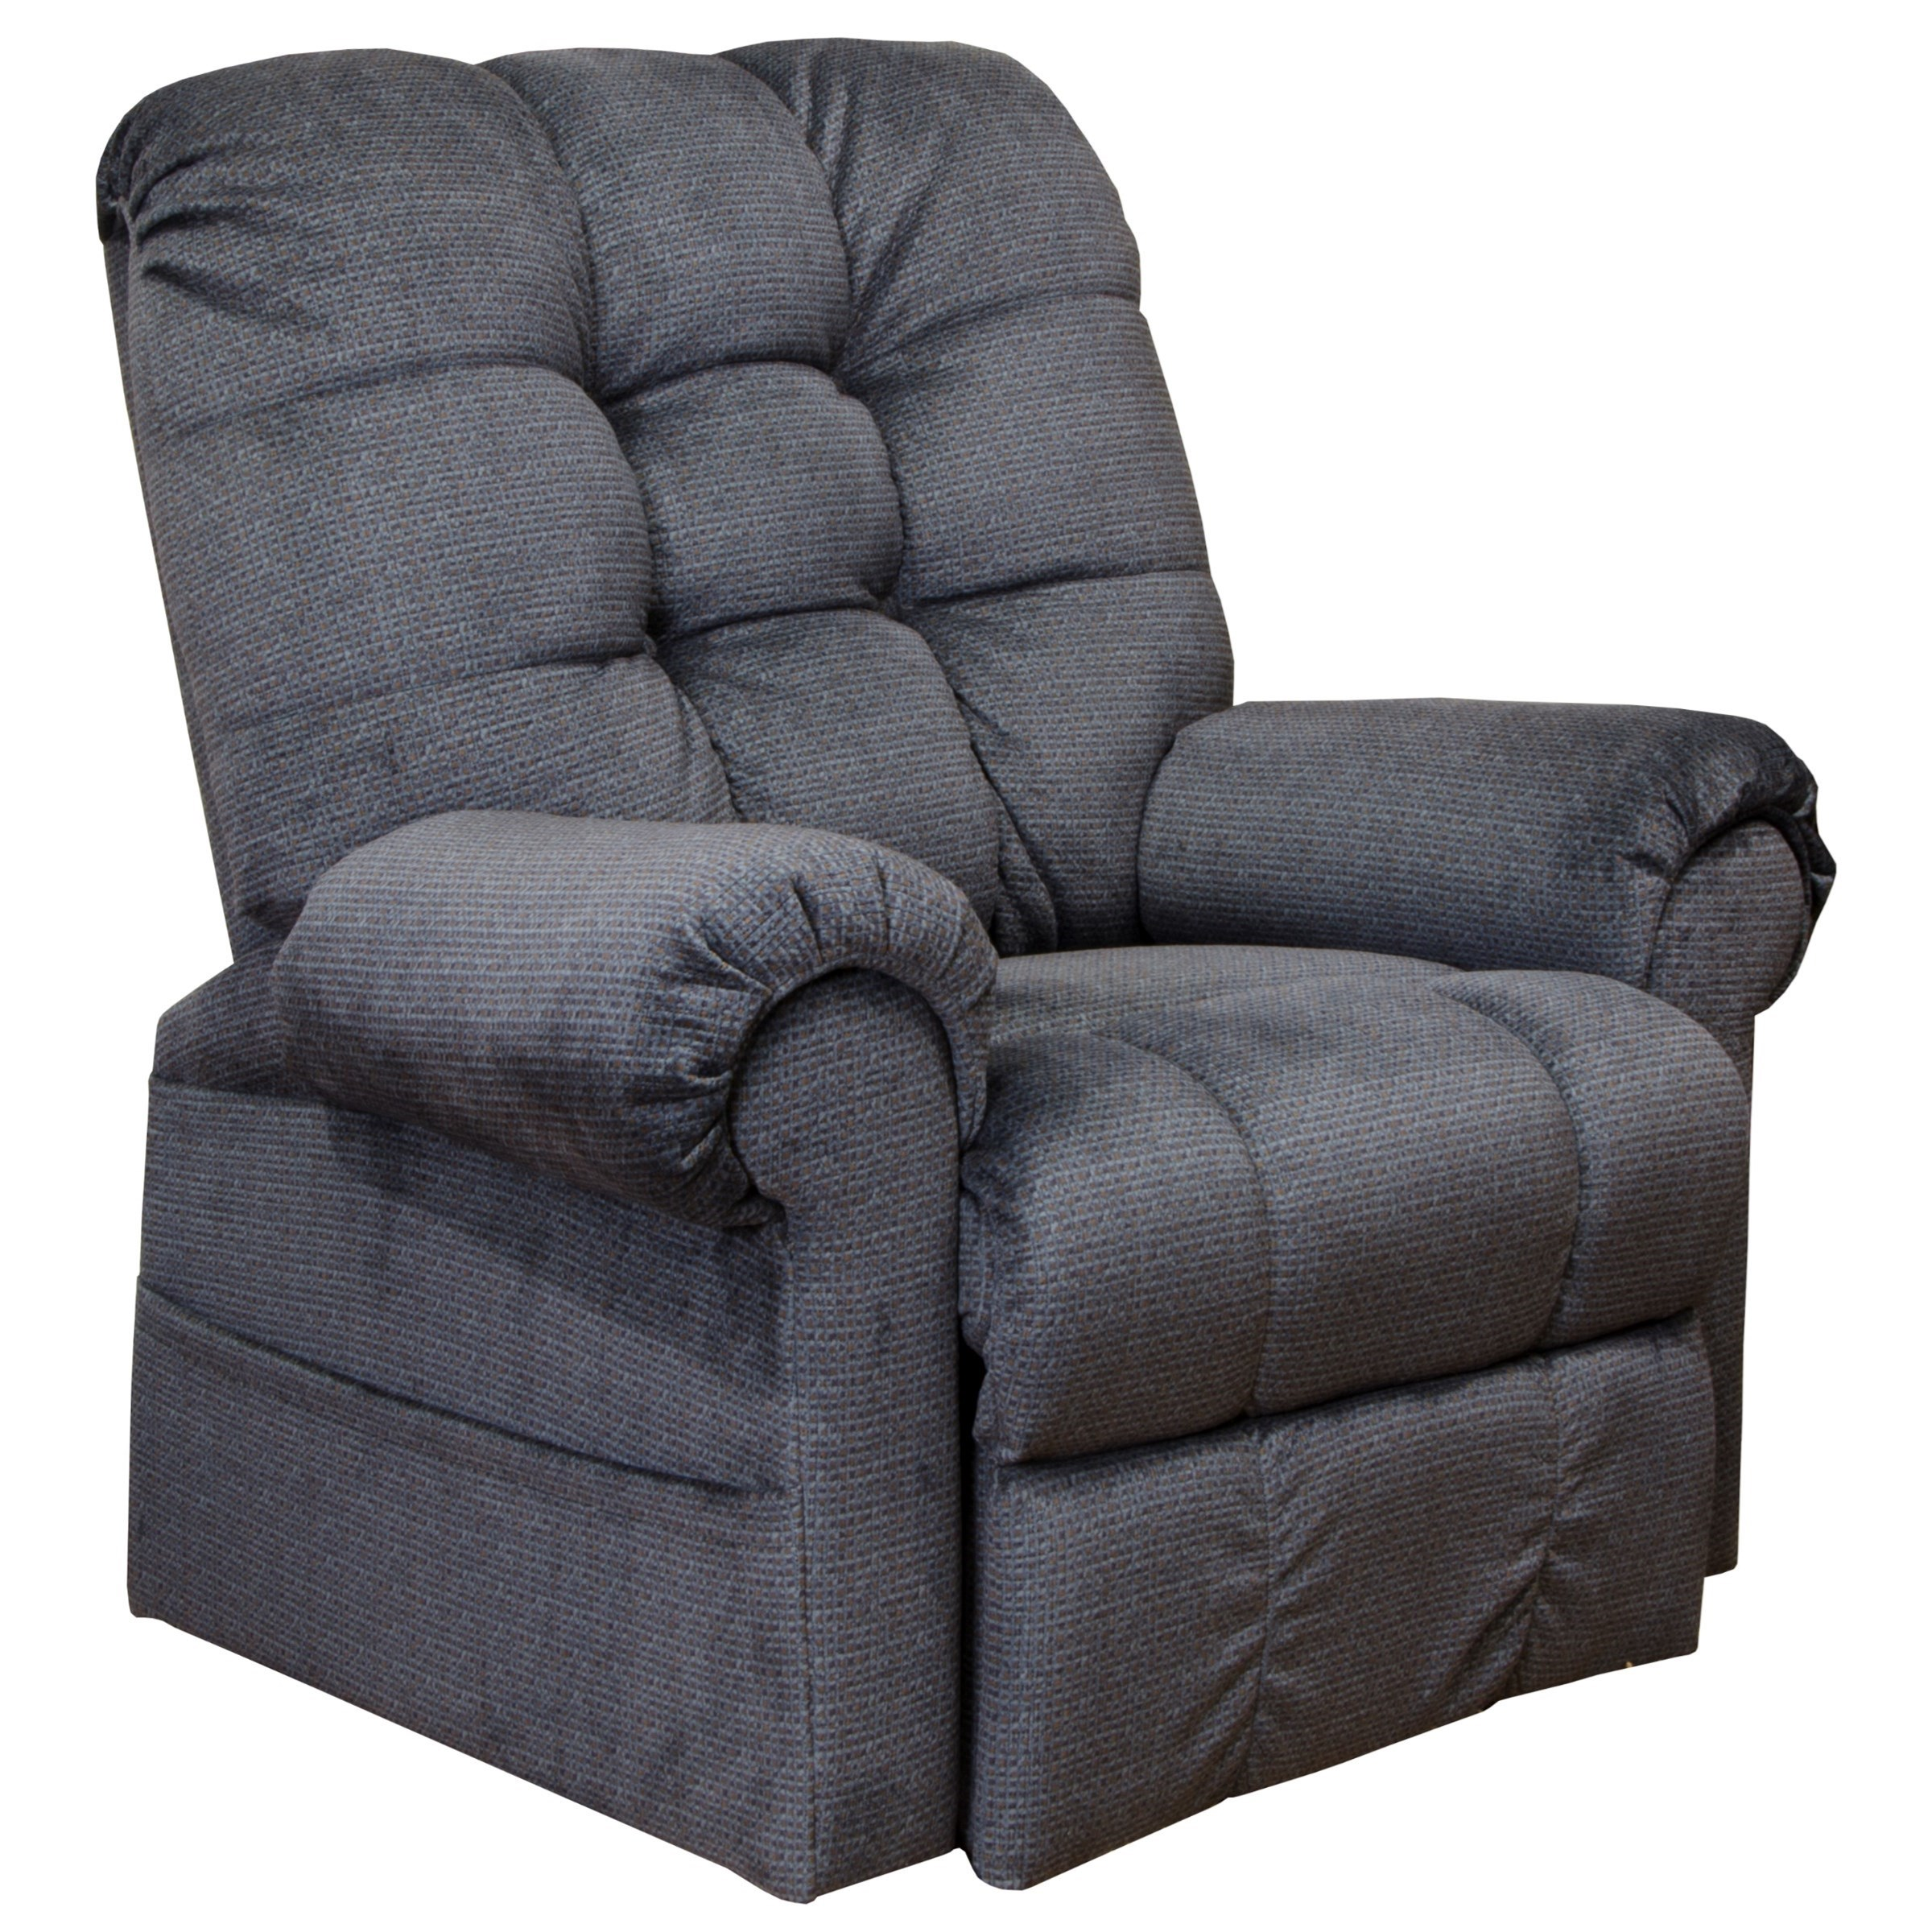 4827 Pow'r Lift Full Layout Chaise Recliner by Catnapper at Value City Furniture